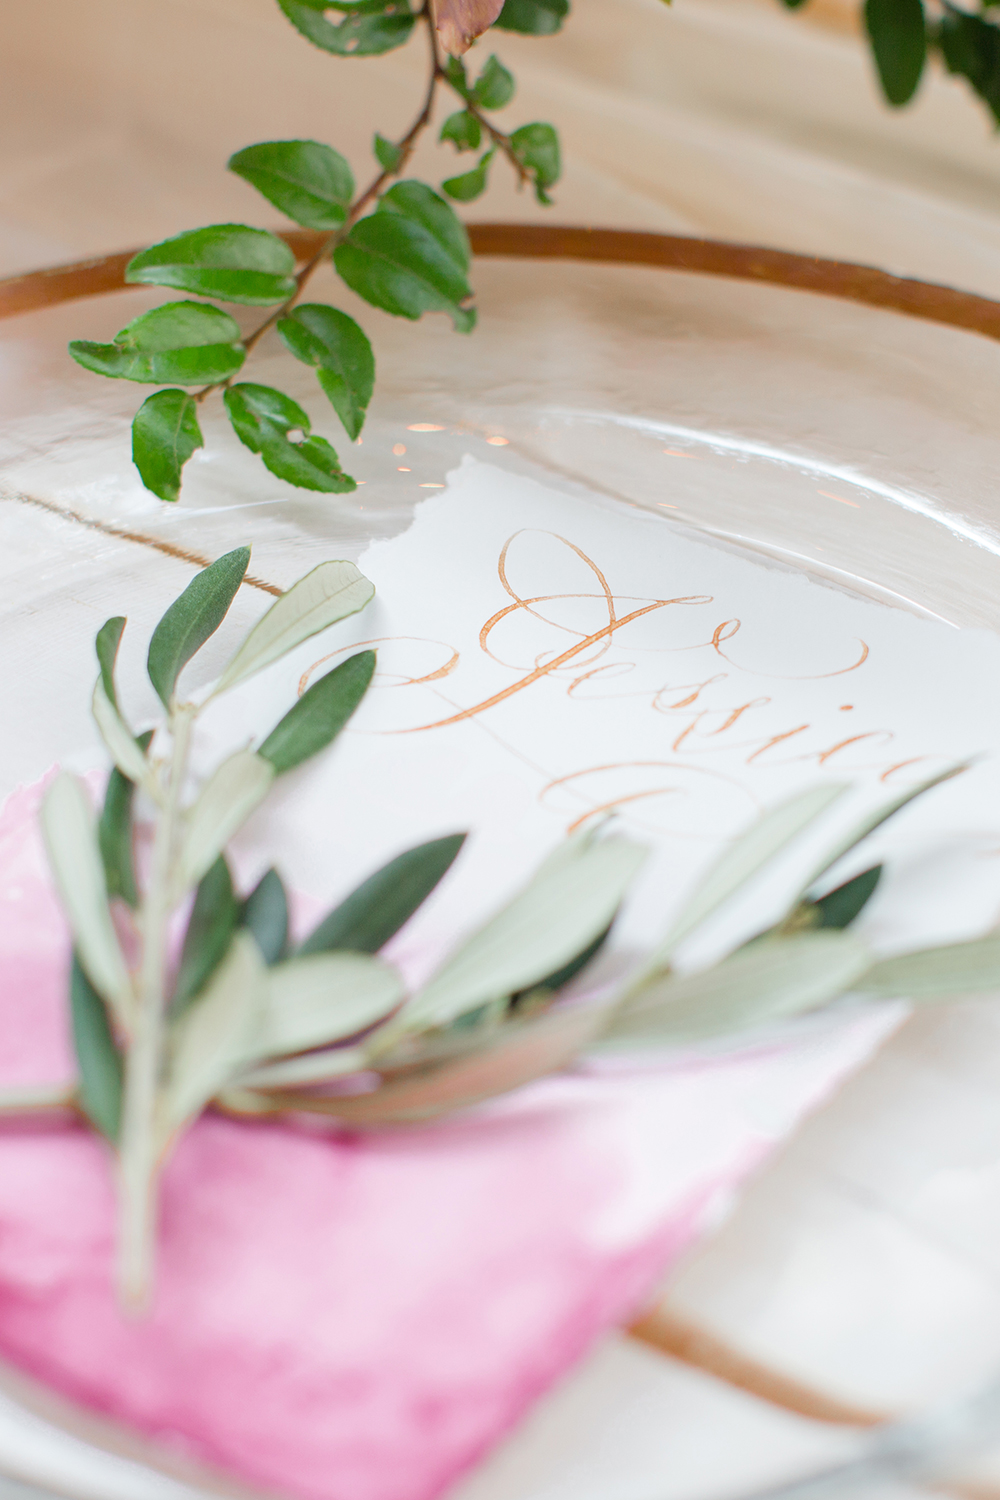 wedding table details - photo by Lauren Lee Photography http://ruffledblog.com/modern-grecian-inspired-wedding-ideas